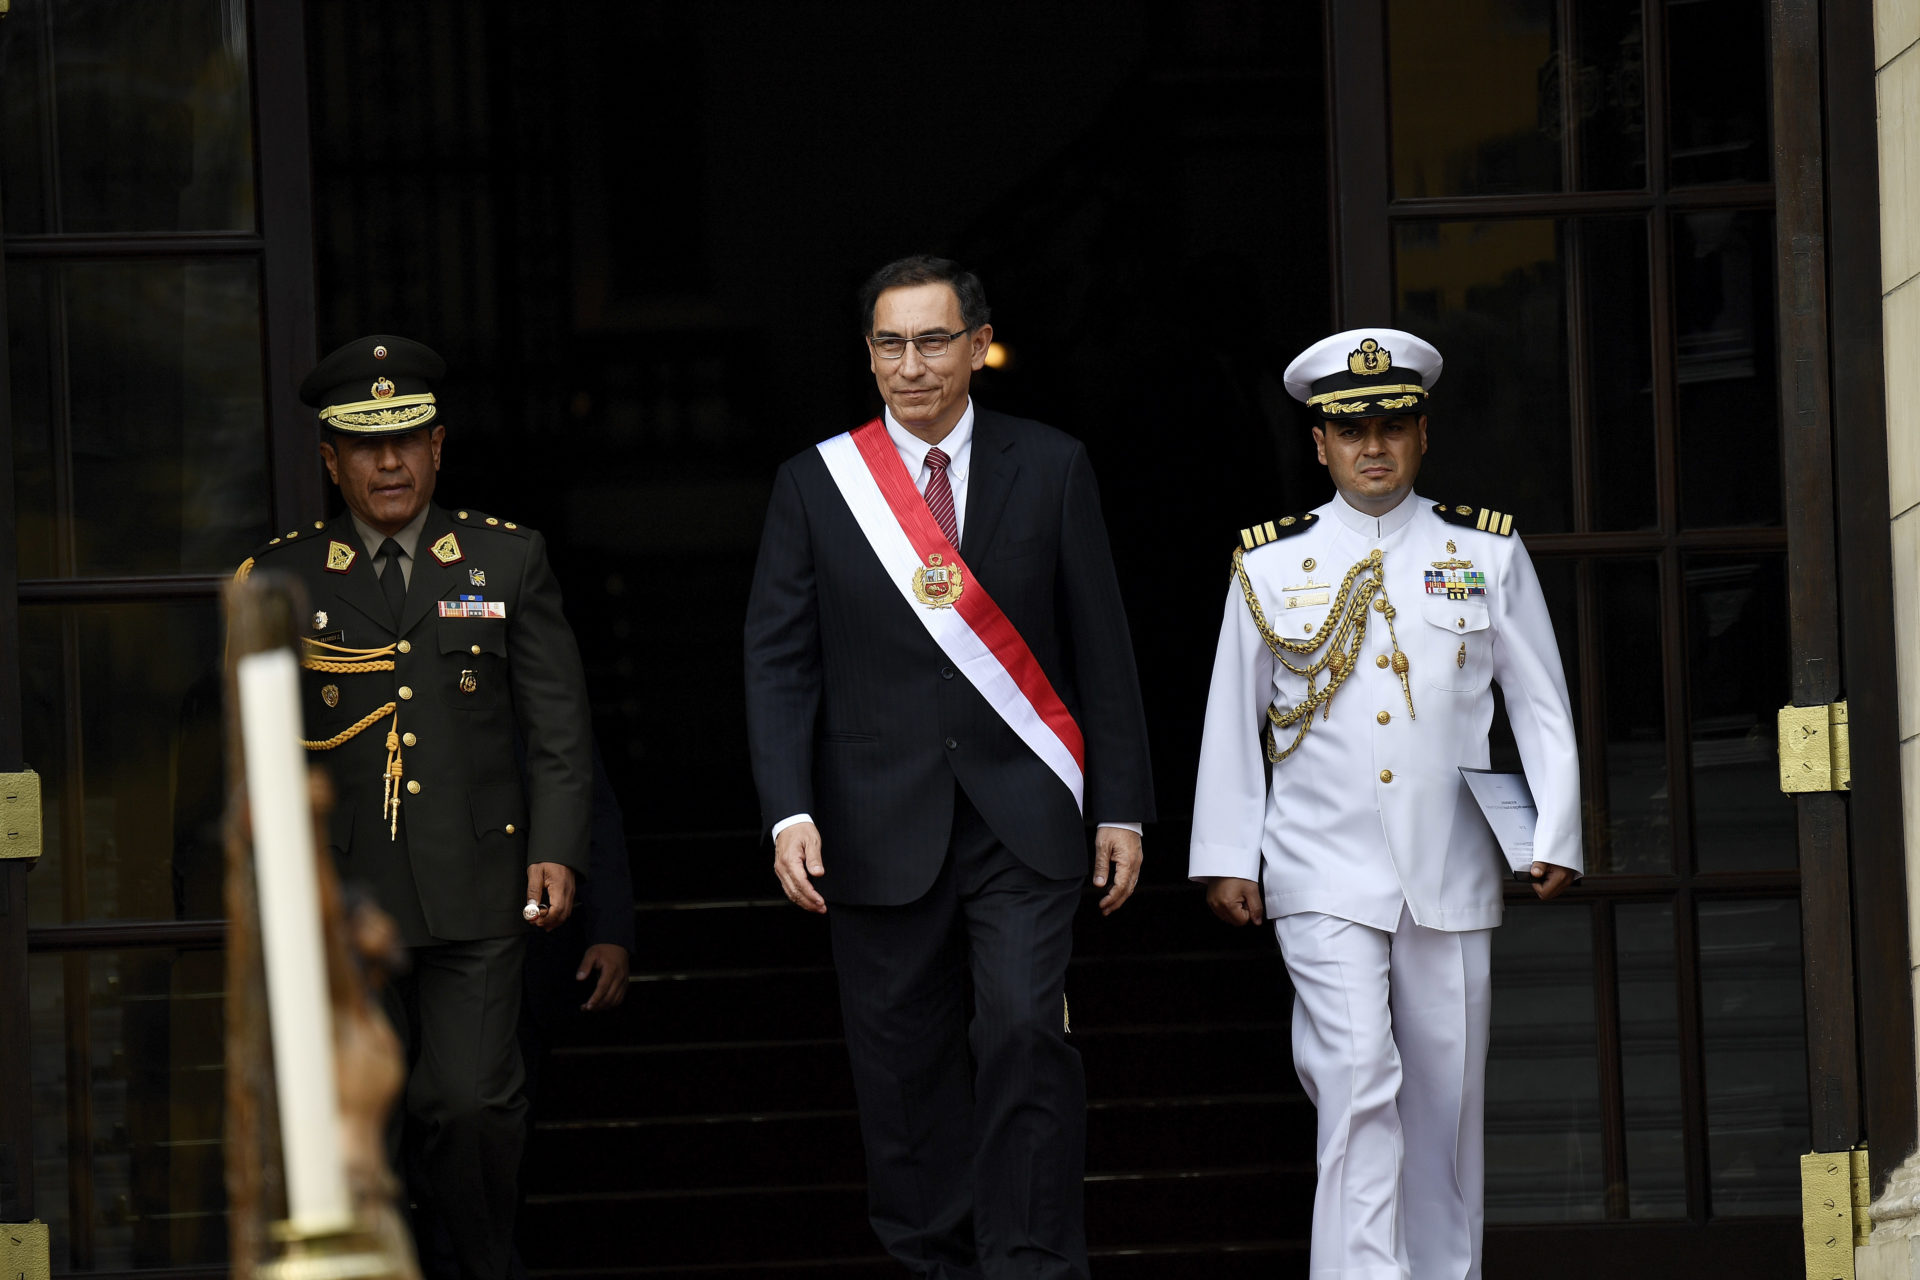 The backstory behind Peru's political turmoil